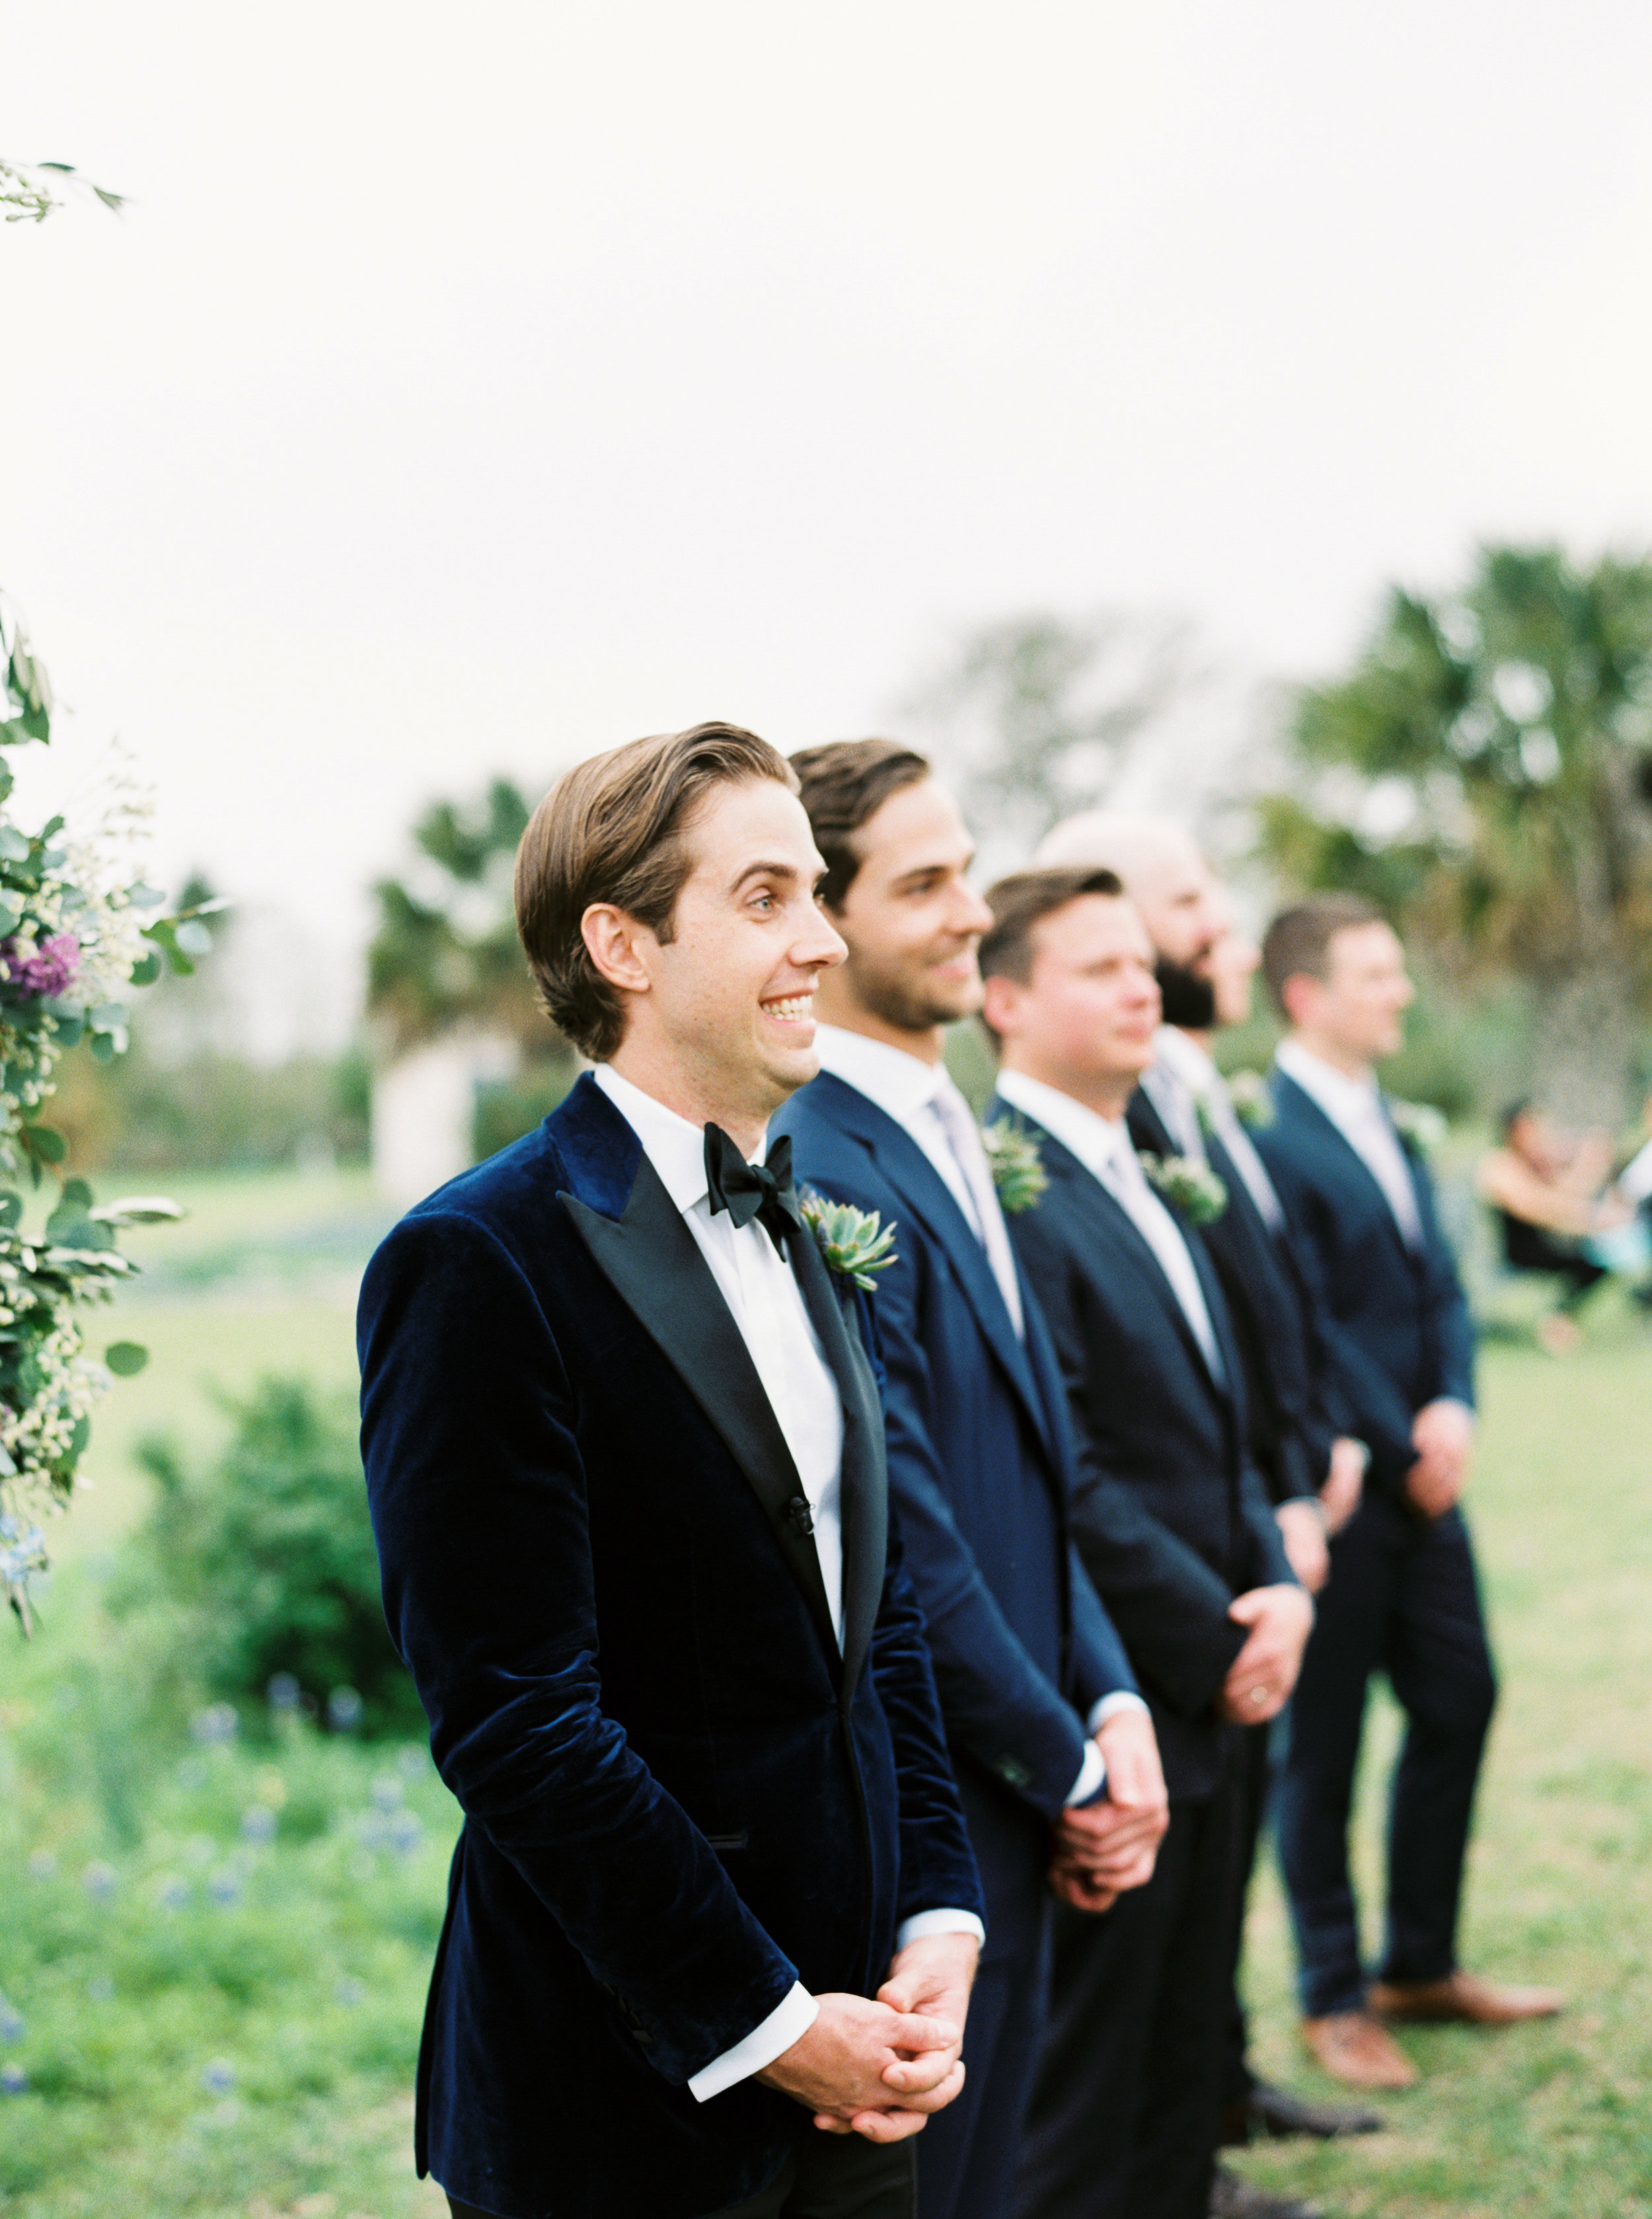 Favorite Moment: - There is no contest here. I love when the groom sees the bride for the first time. Whether it's a first look or walking down the aisle, it's always pure magic.